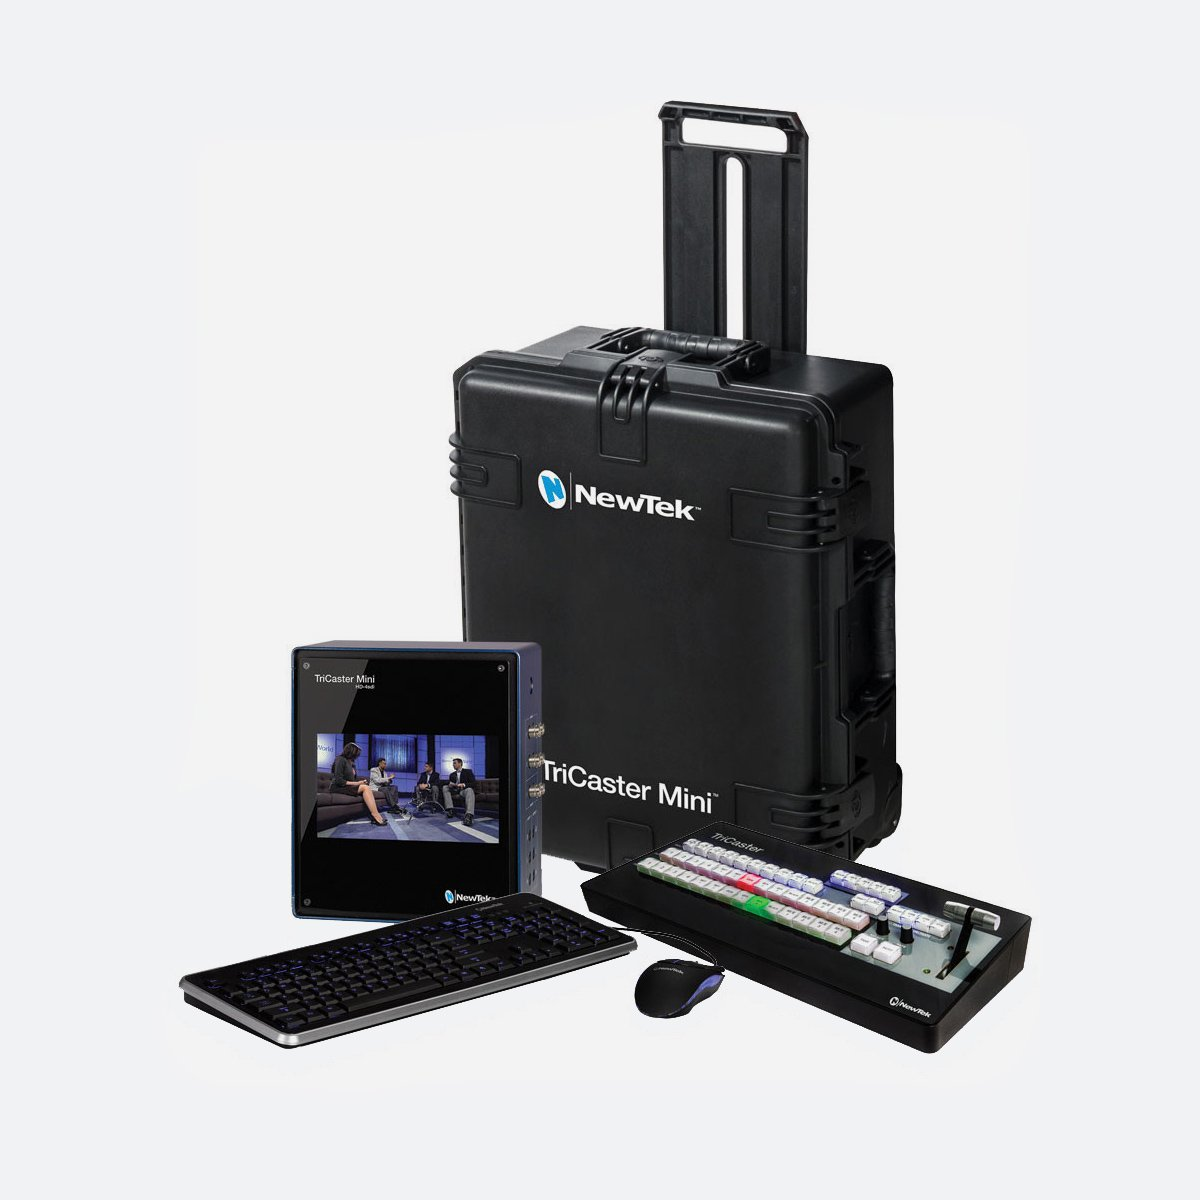 NewTek TriCaster Mini HD-4sdi SDI Bundle new